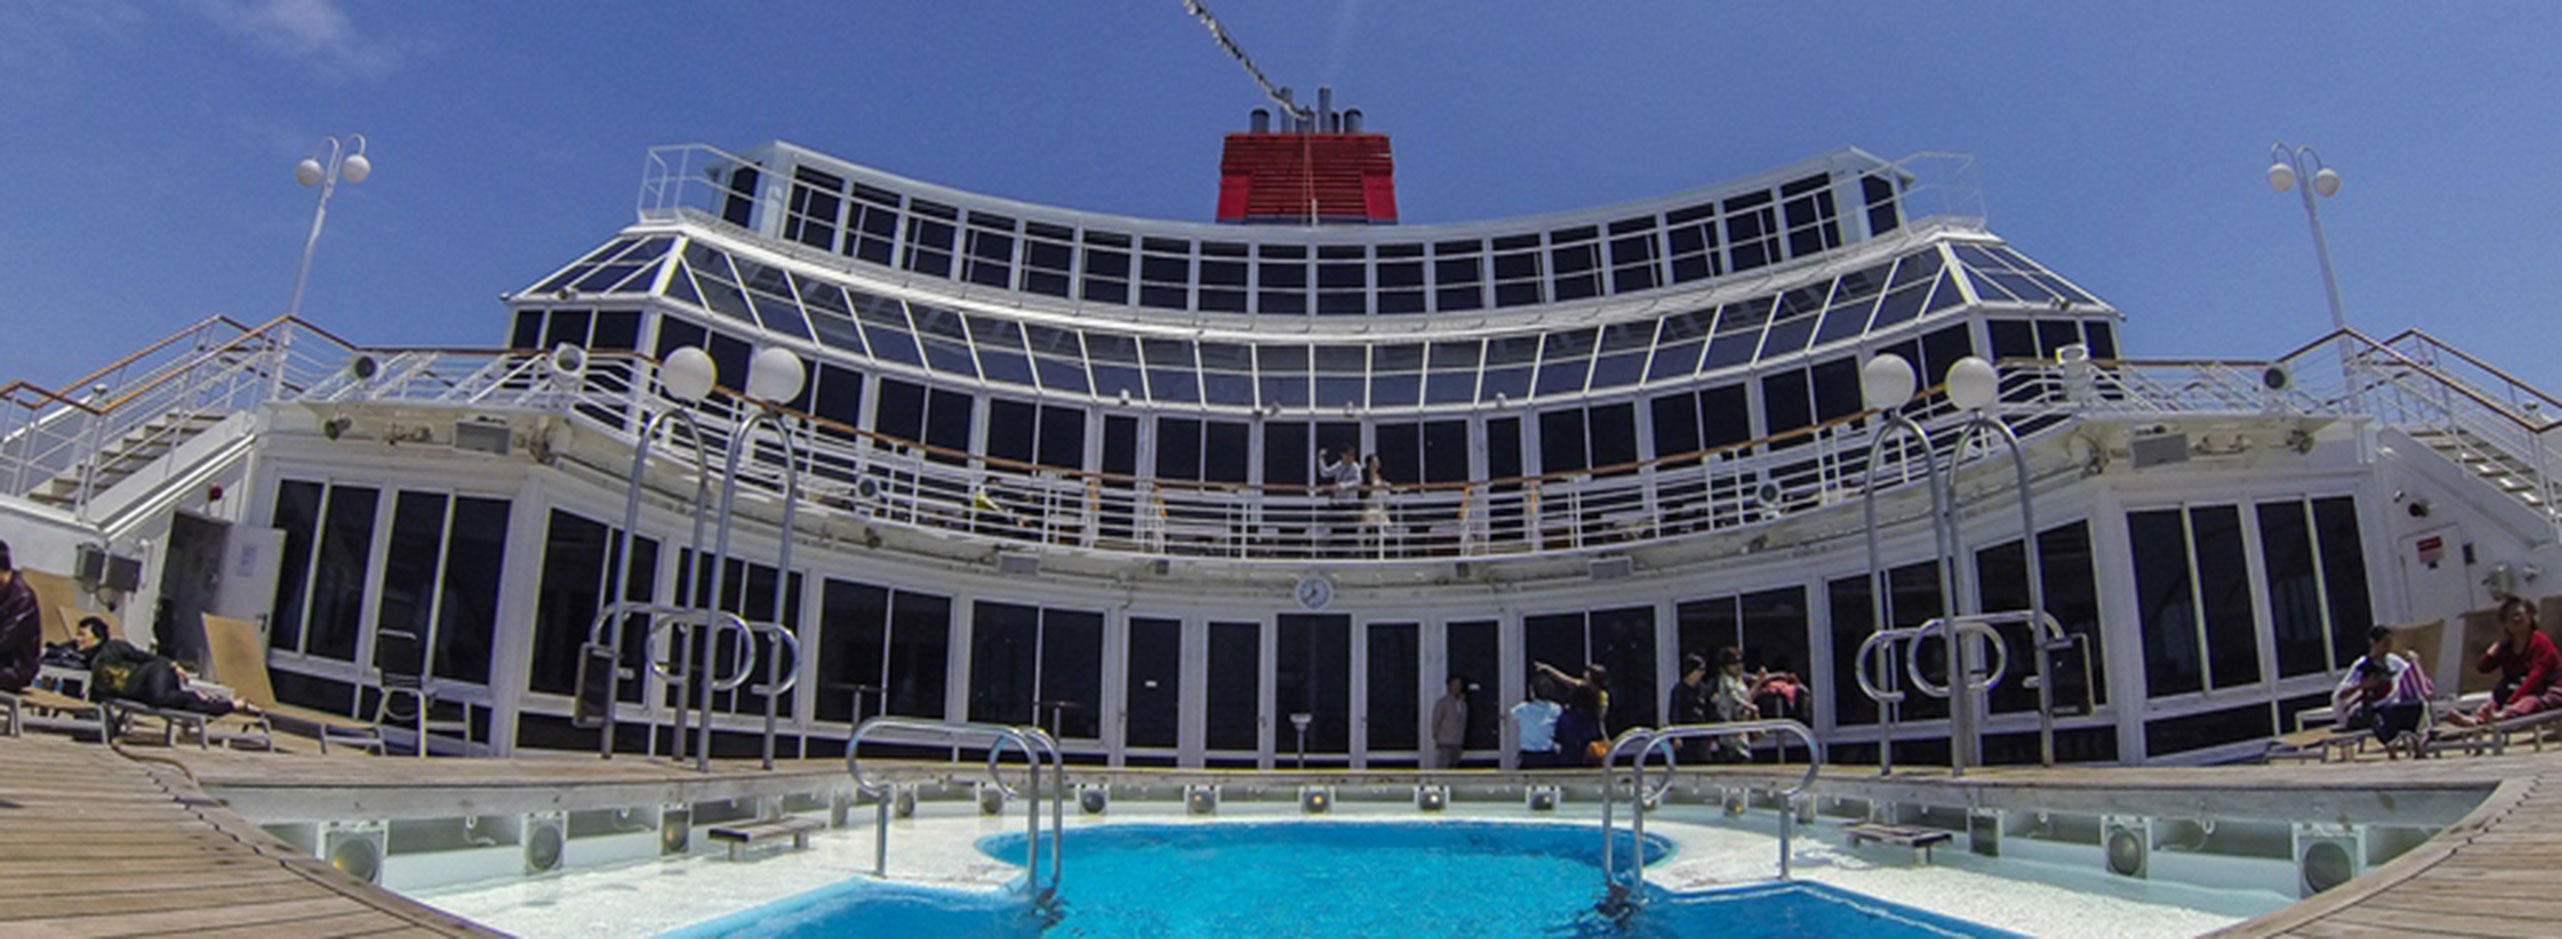 Swimming Pool Recreations Amp Wellness Star Cruises